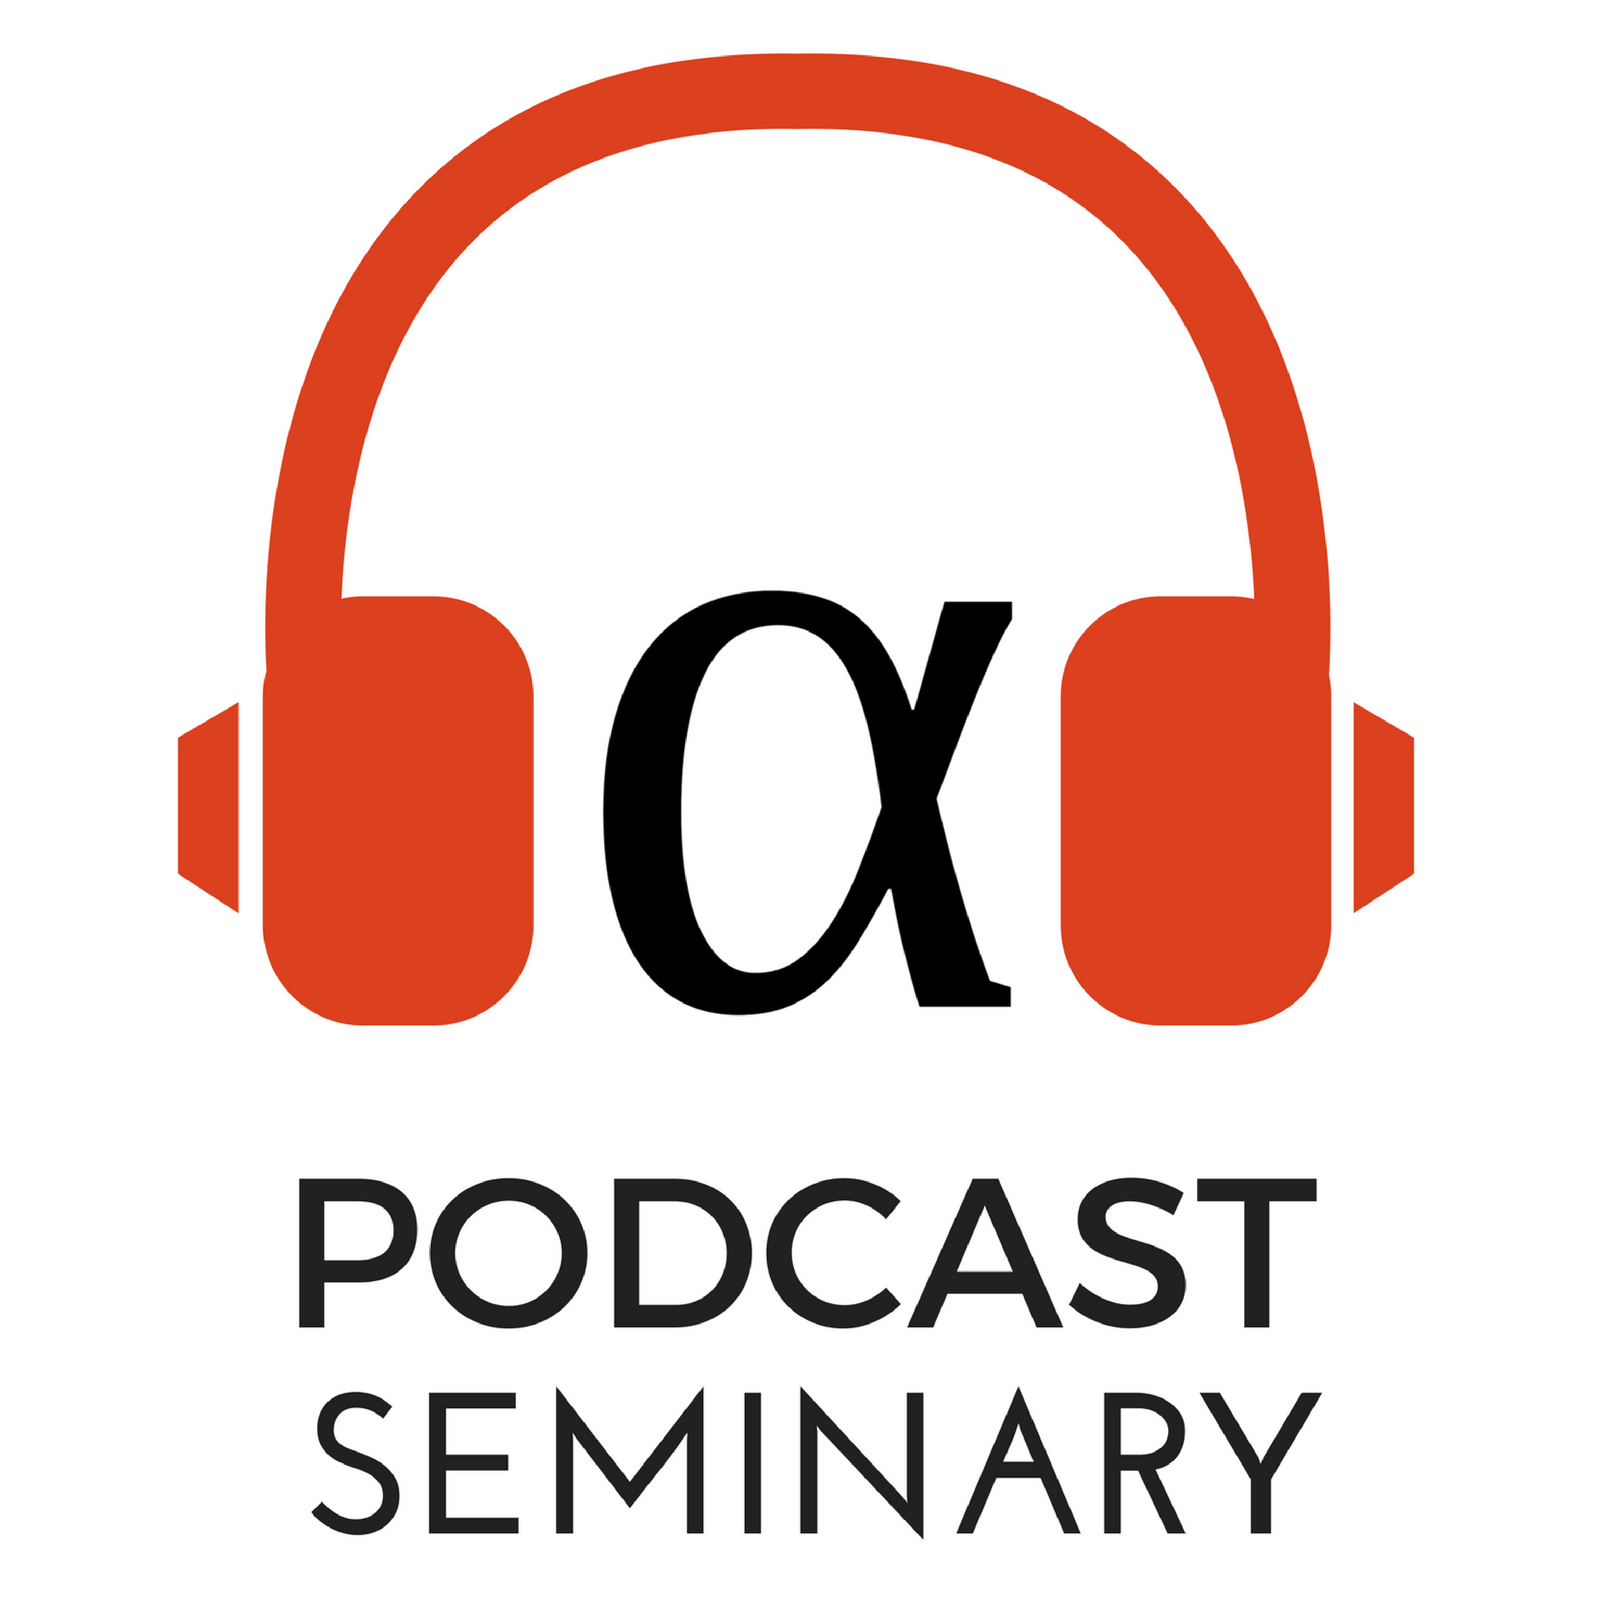 Artwork for Episode 044, Introducing Our Sister Podcast: Podcast Seminary